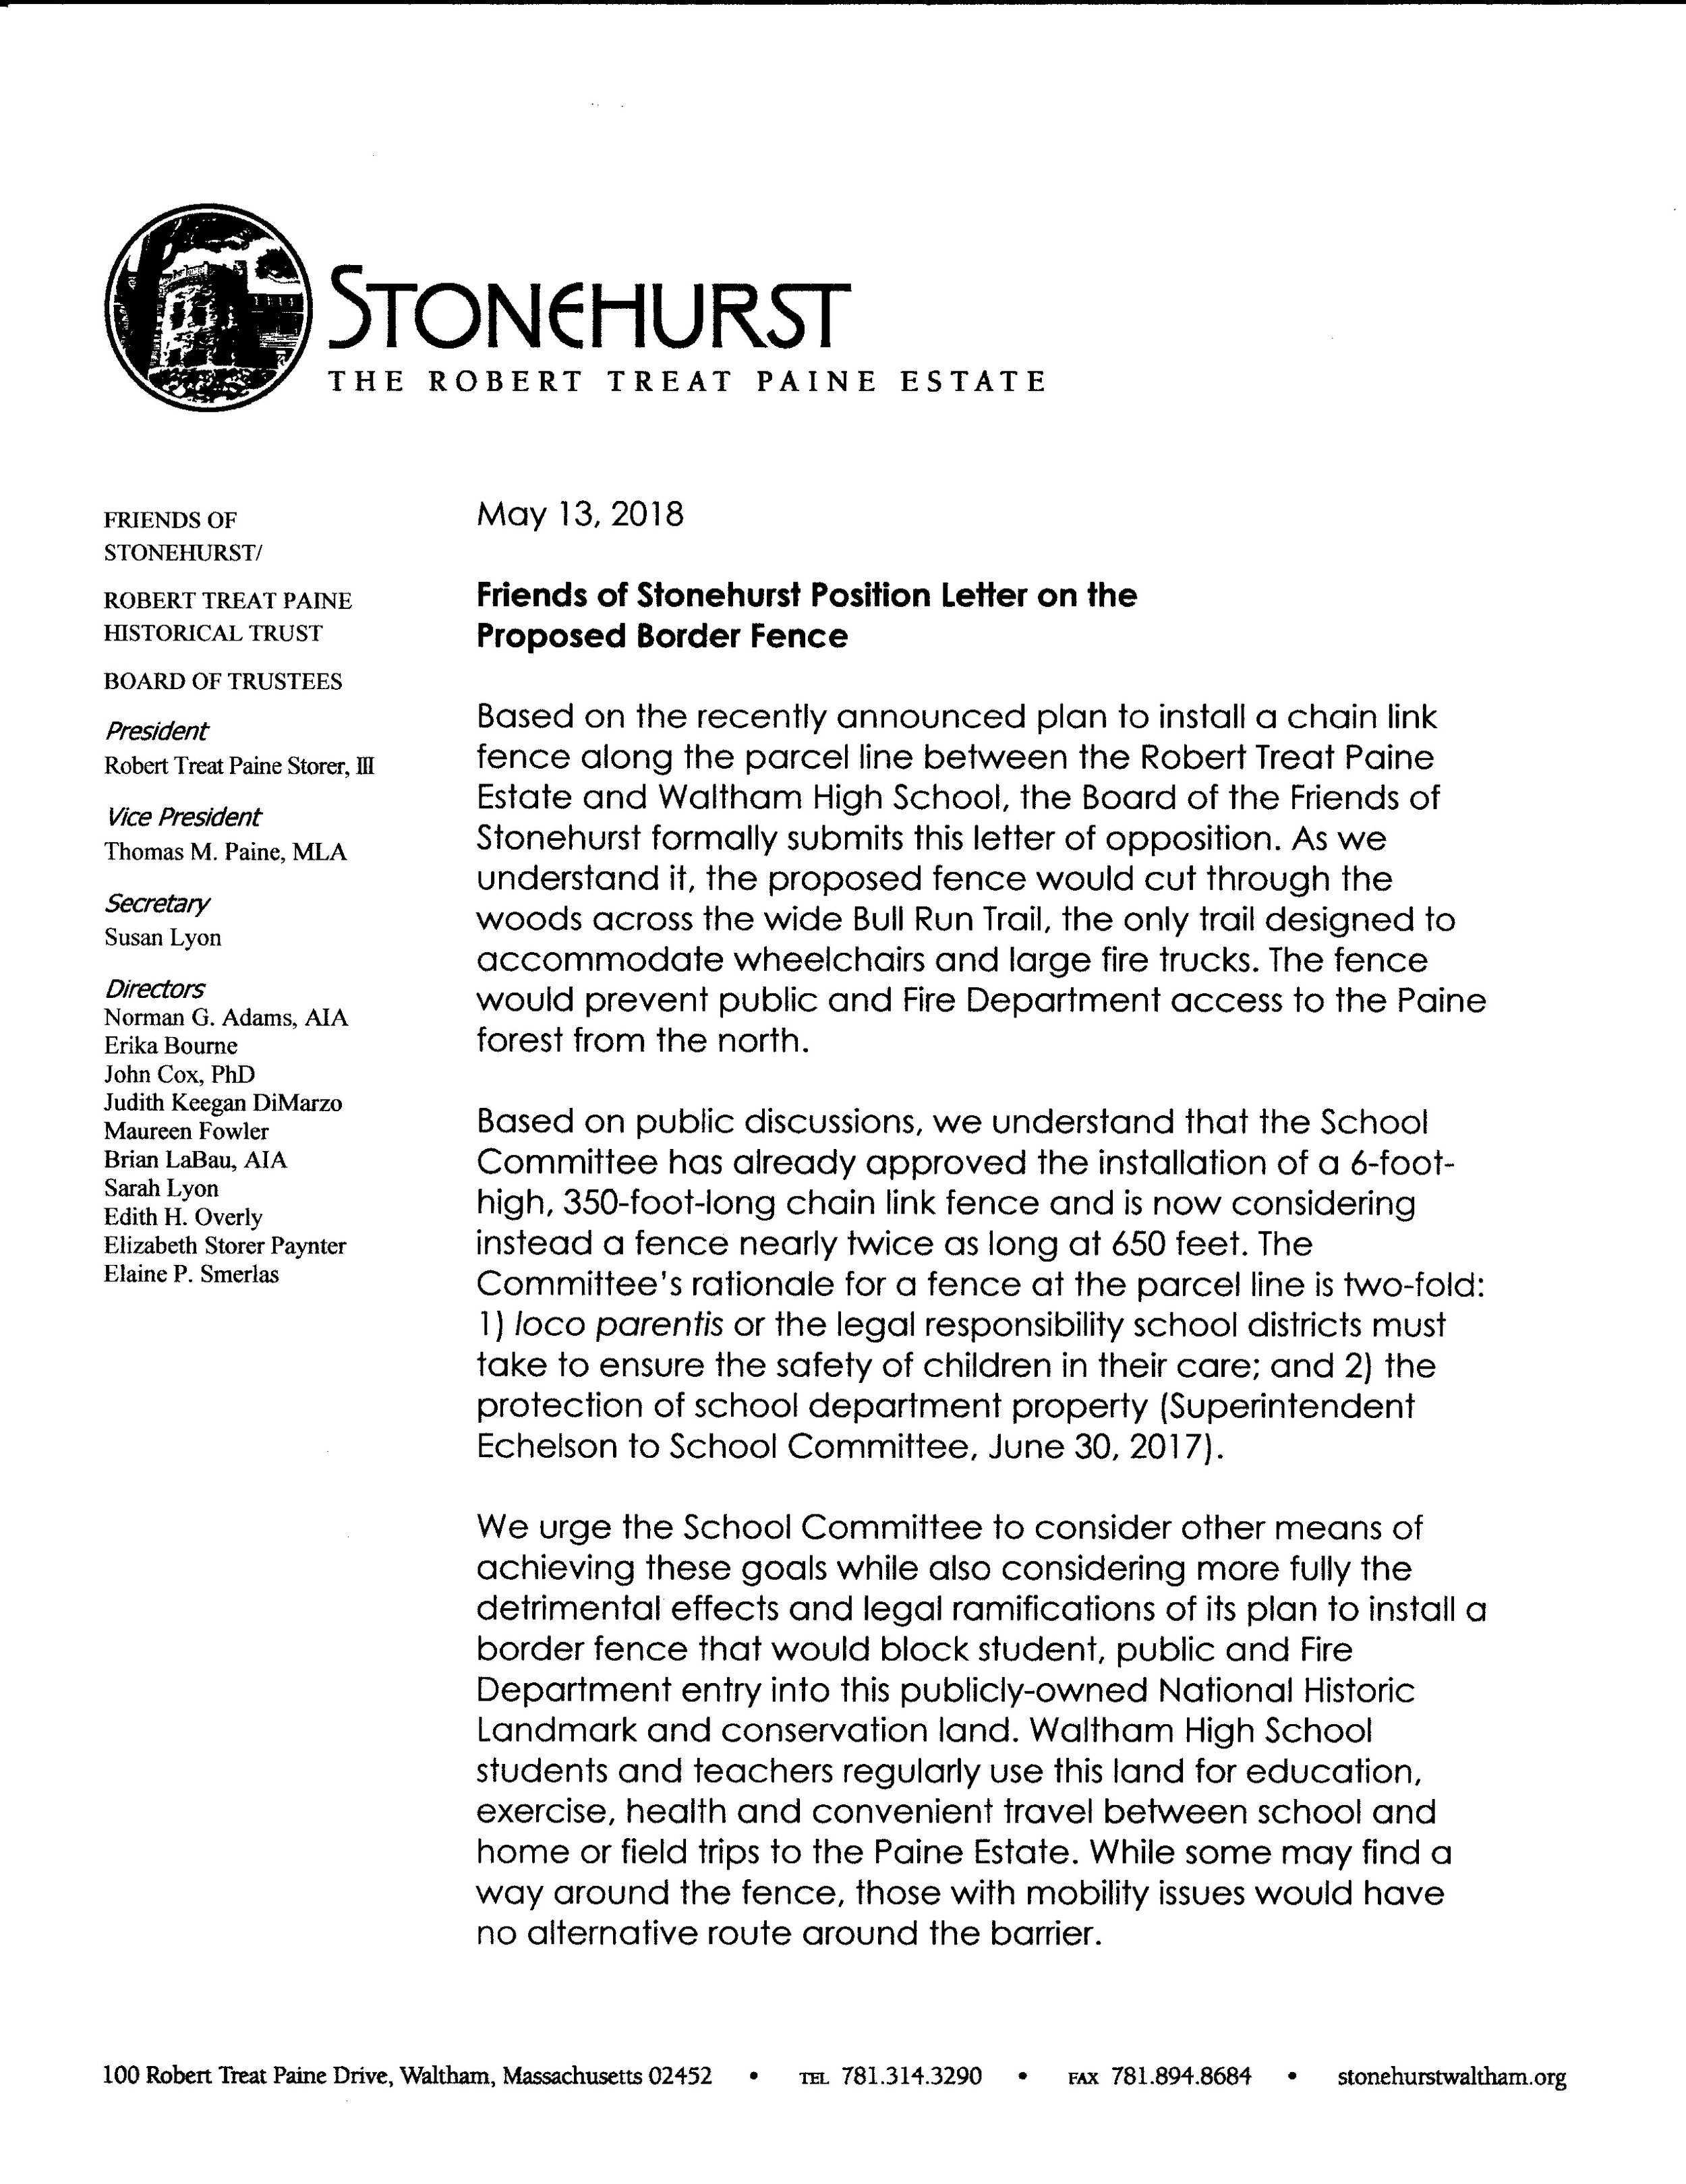 FoS position letter on proposed border fence at WHS jpeg.jpg